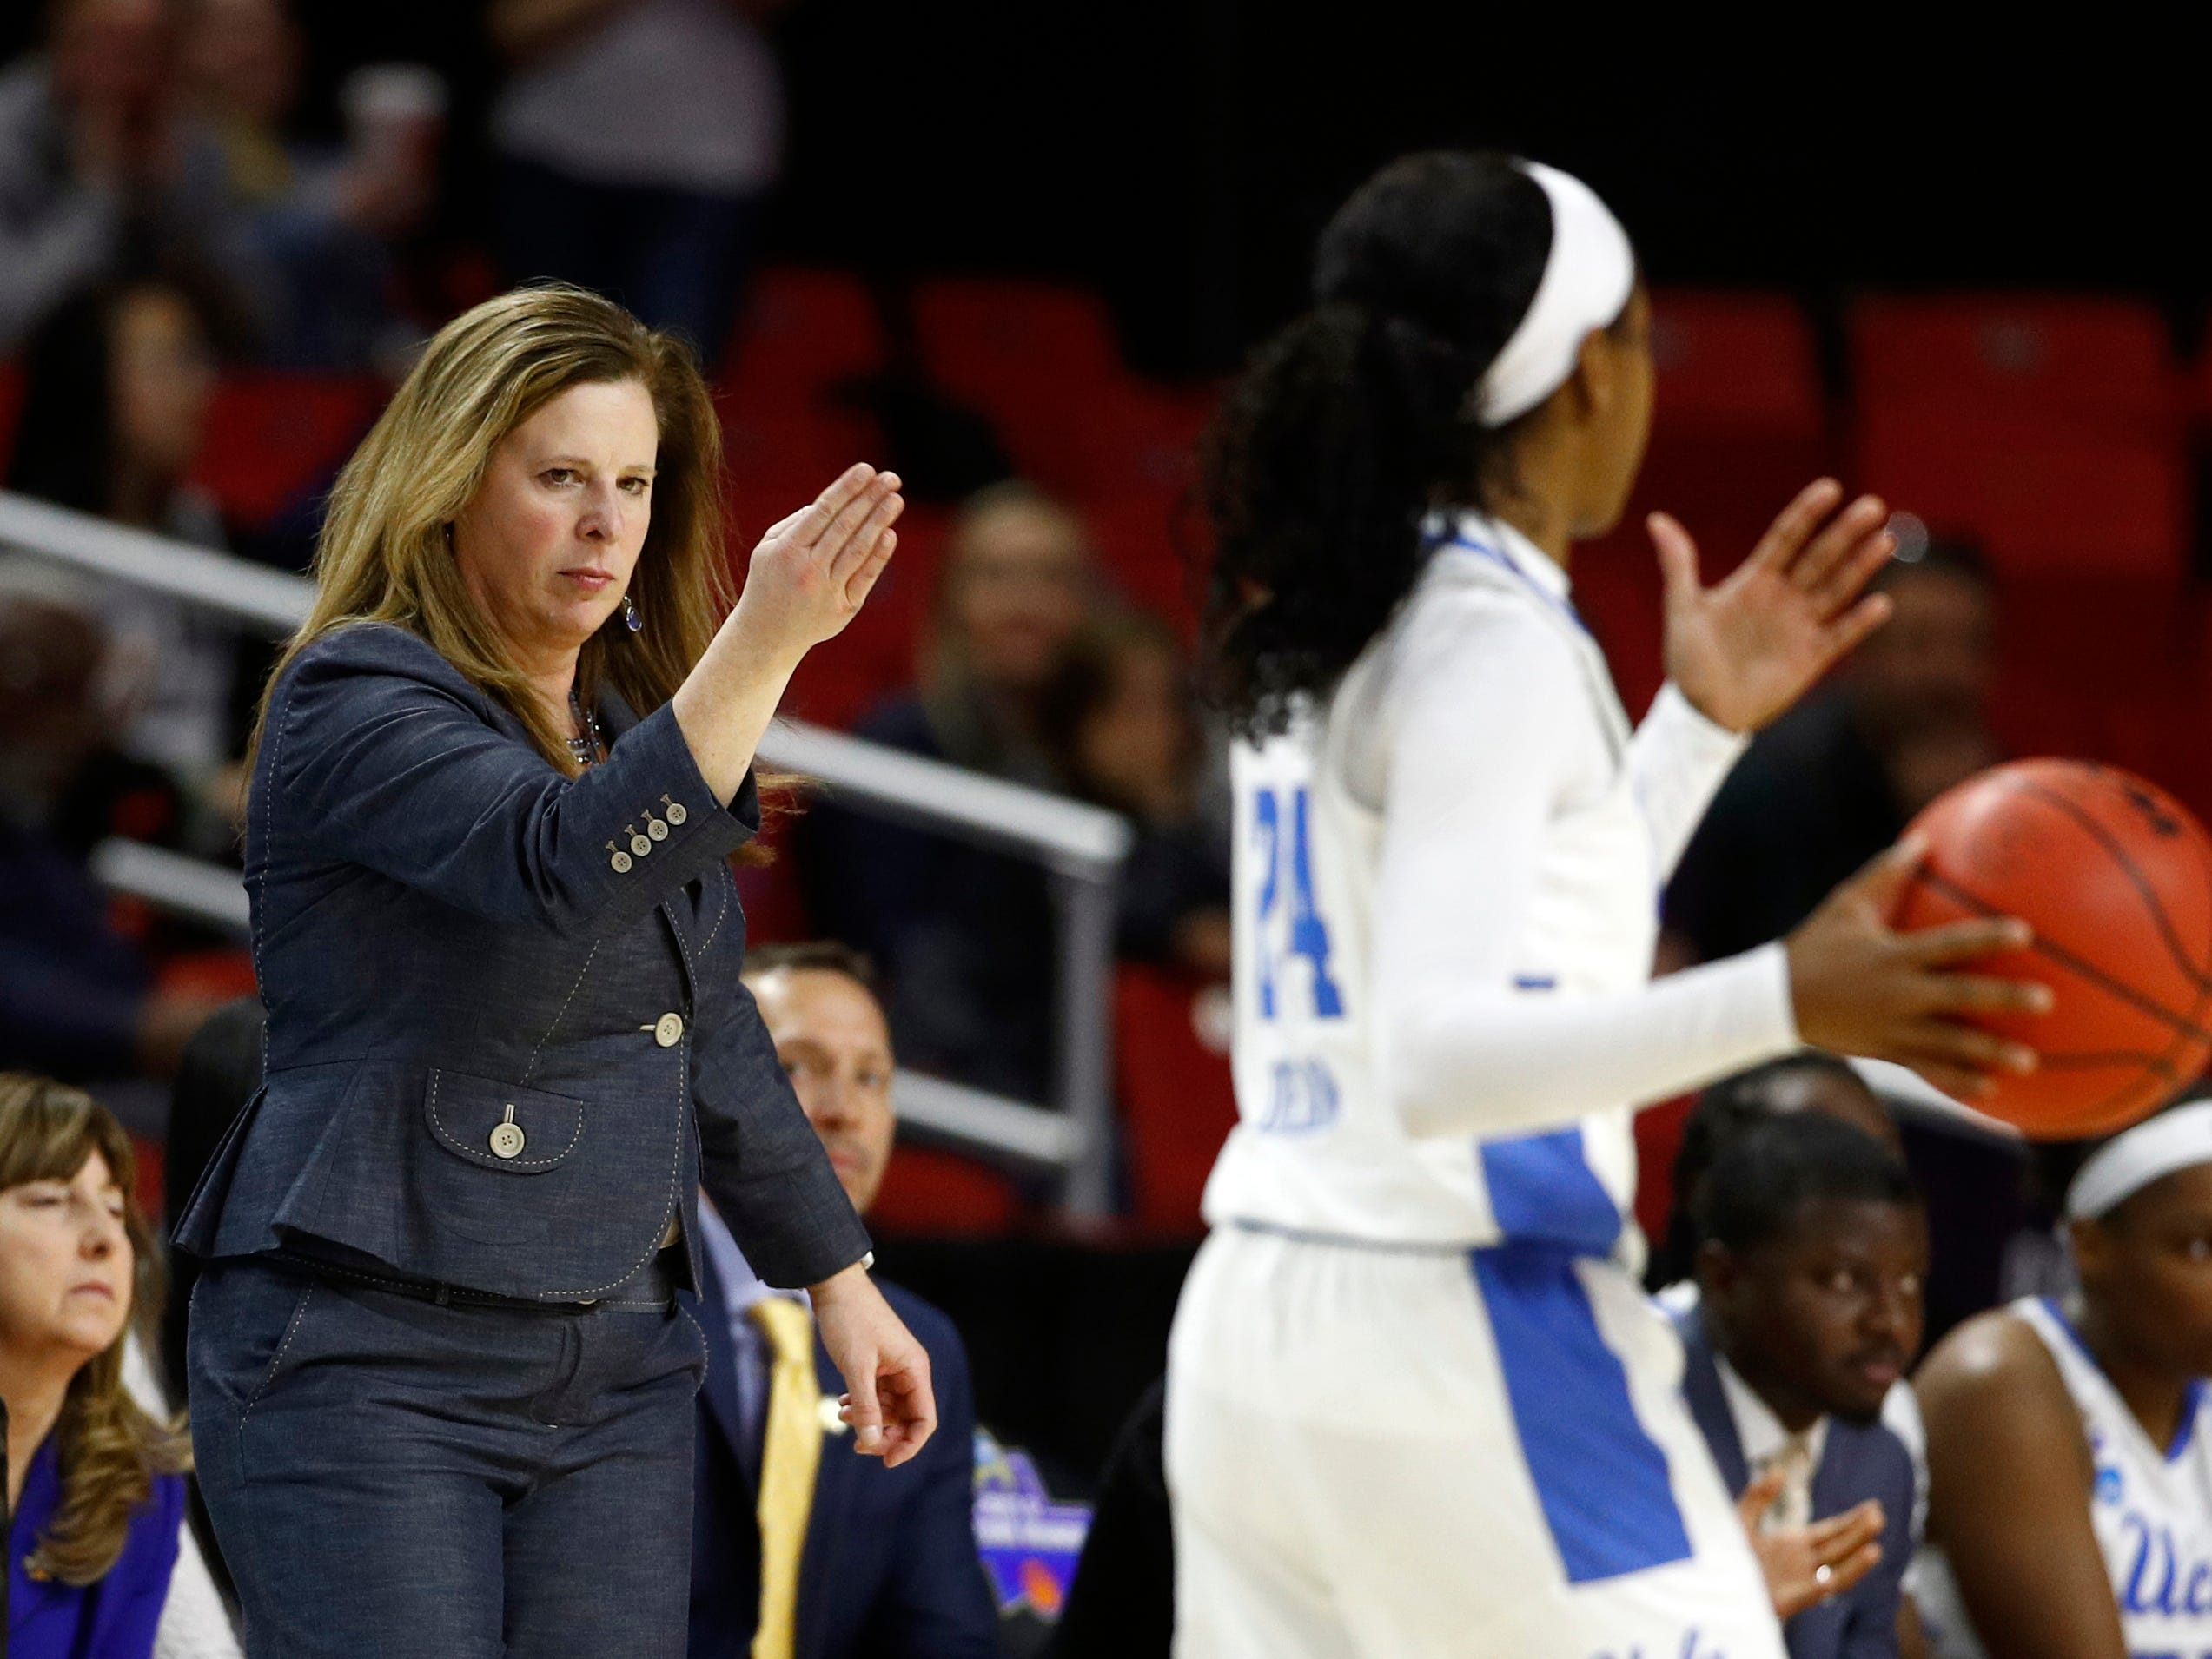 UCLA head coach Cori Close, left, directs guard Japreece Dean in the second half of a first-round game against Tennessee in the NCAA women's college basketball tournament, Saturday, March 23, 2019, in College Park, Md.